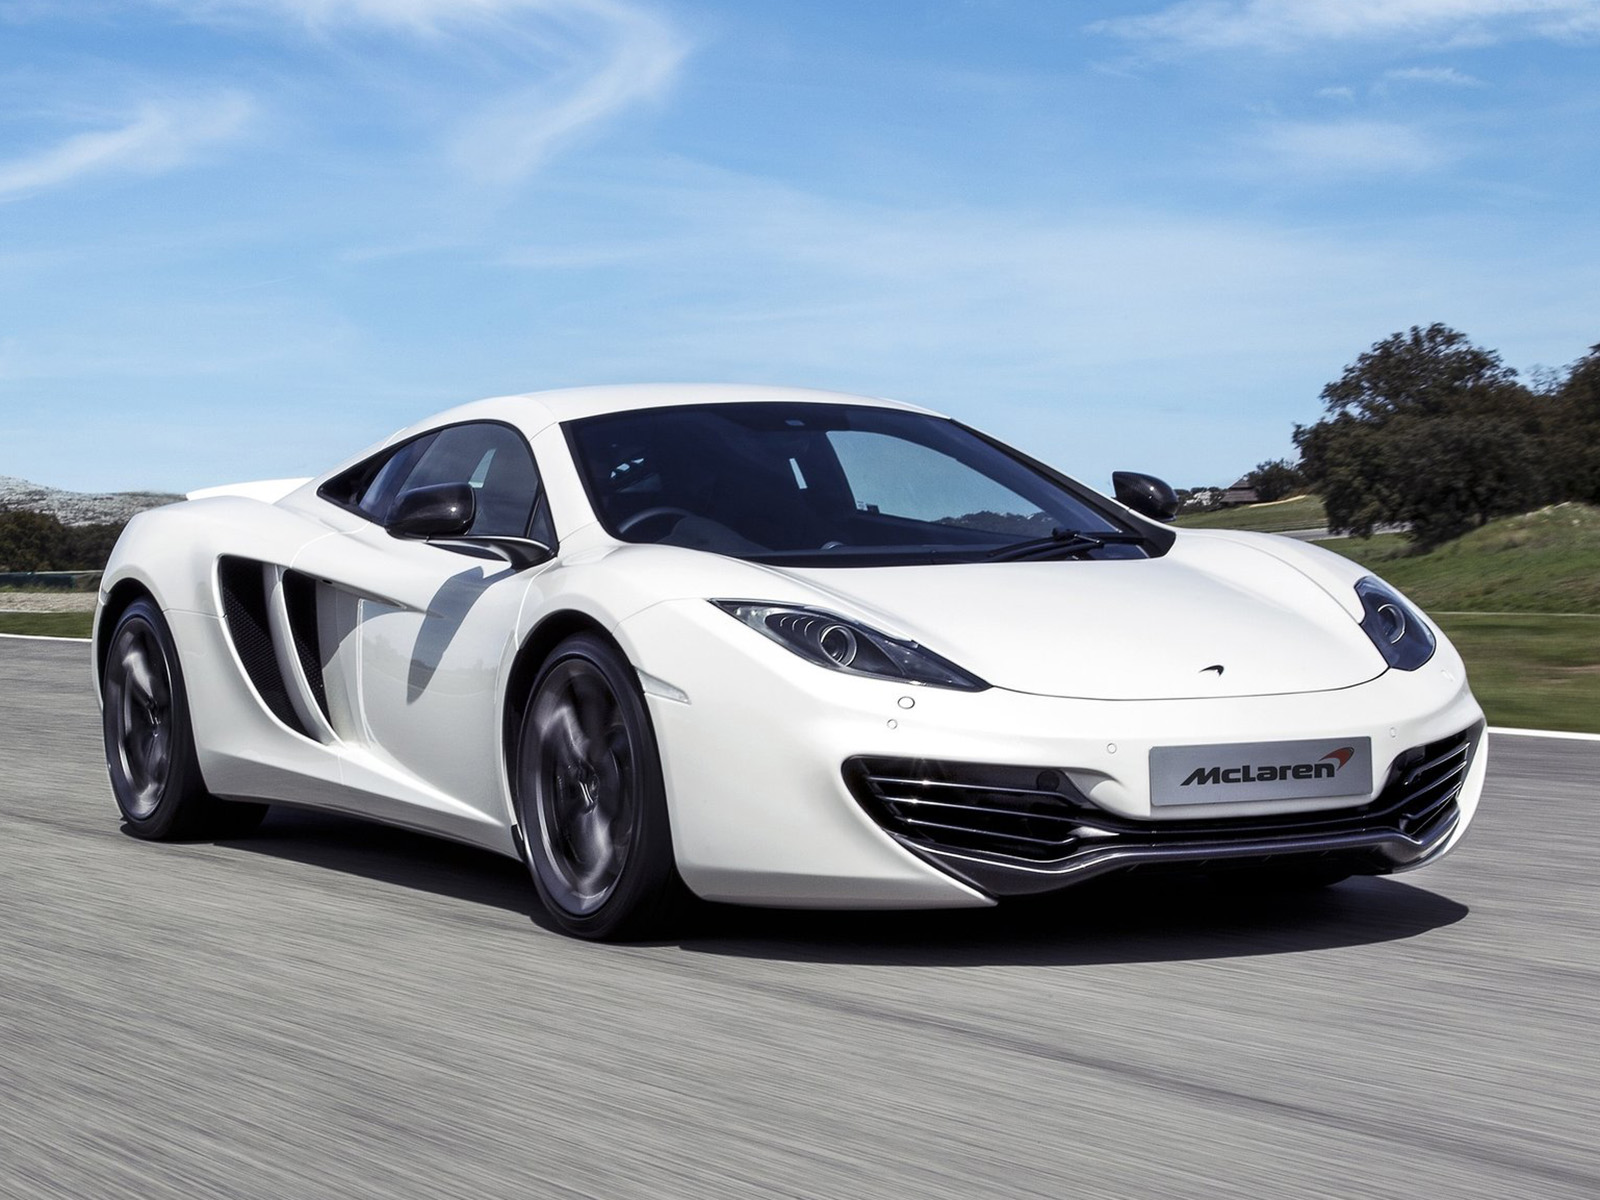 vista frontal mclaren mp4/12c movimiento